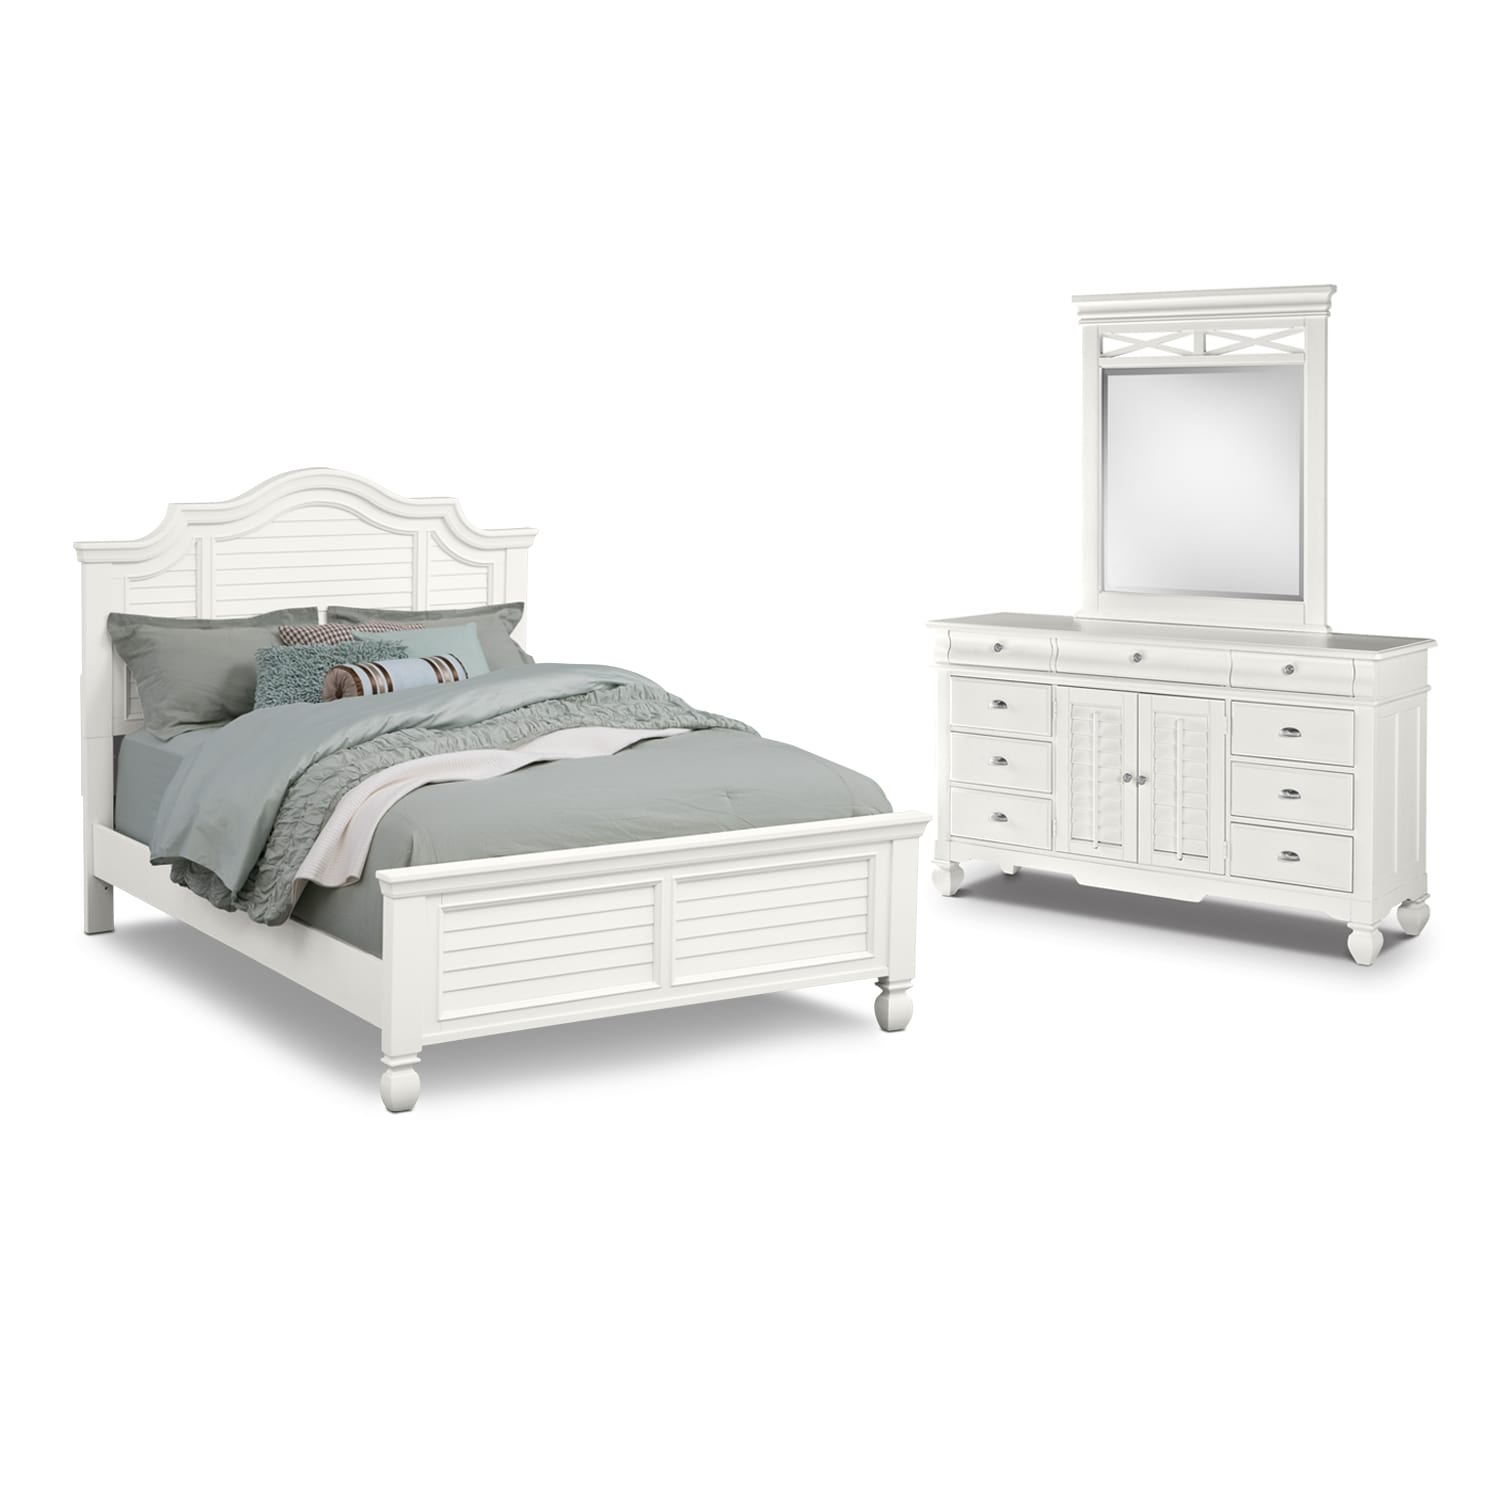 [Plantation Cove White Panel 5 Pc. Queen Bedroom]